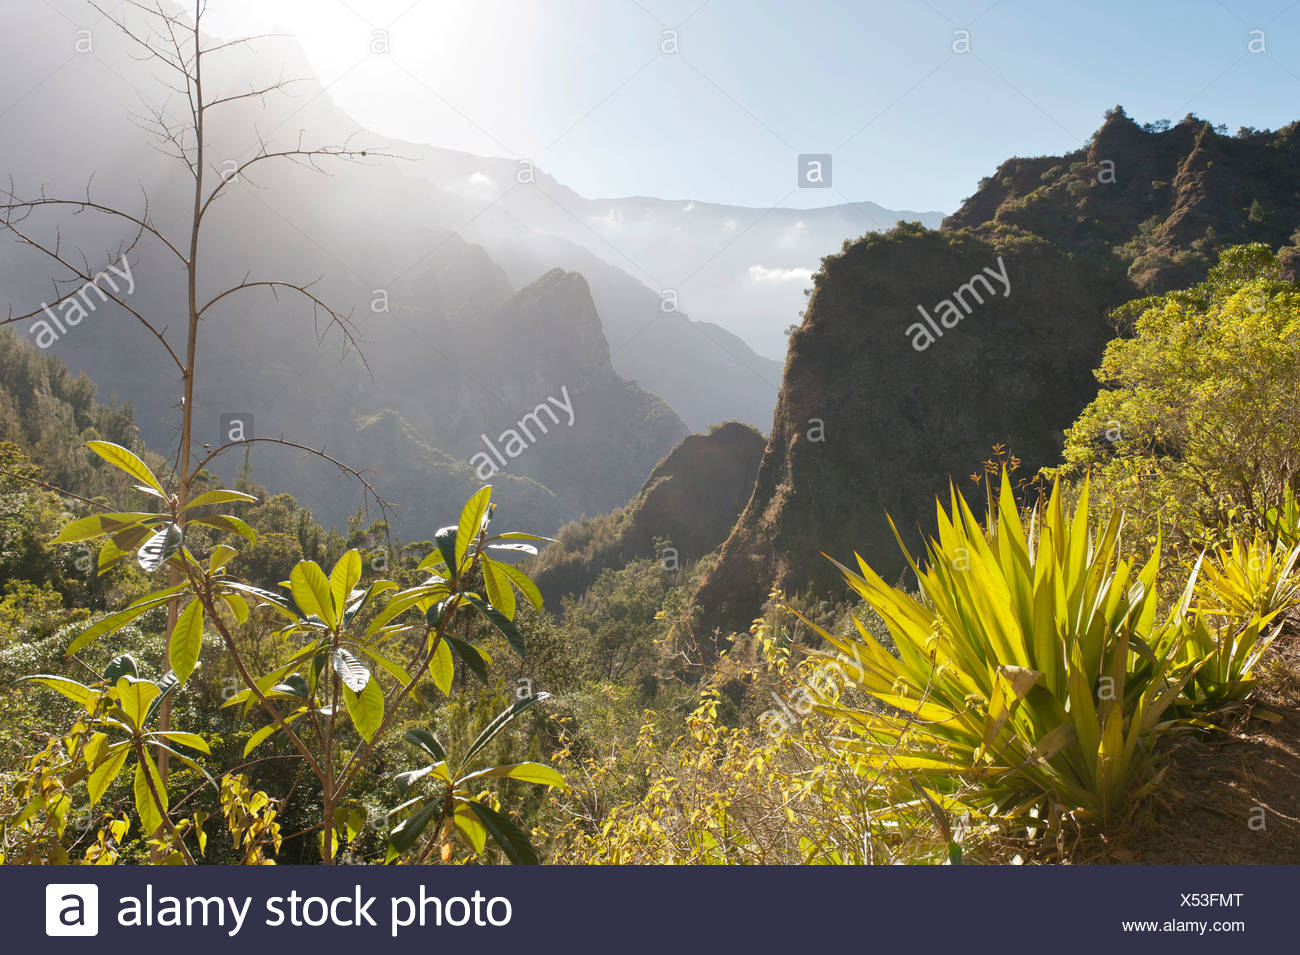 Mystical misty mountain landscape, with agave in the foreground, Cilaos, Cirque de Cilaos, French Overseas Territory - Stock Image